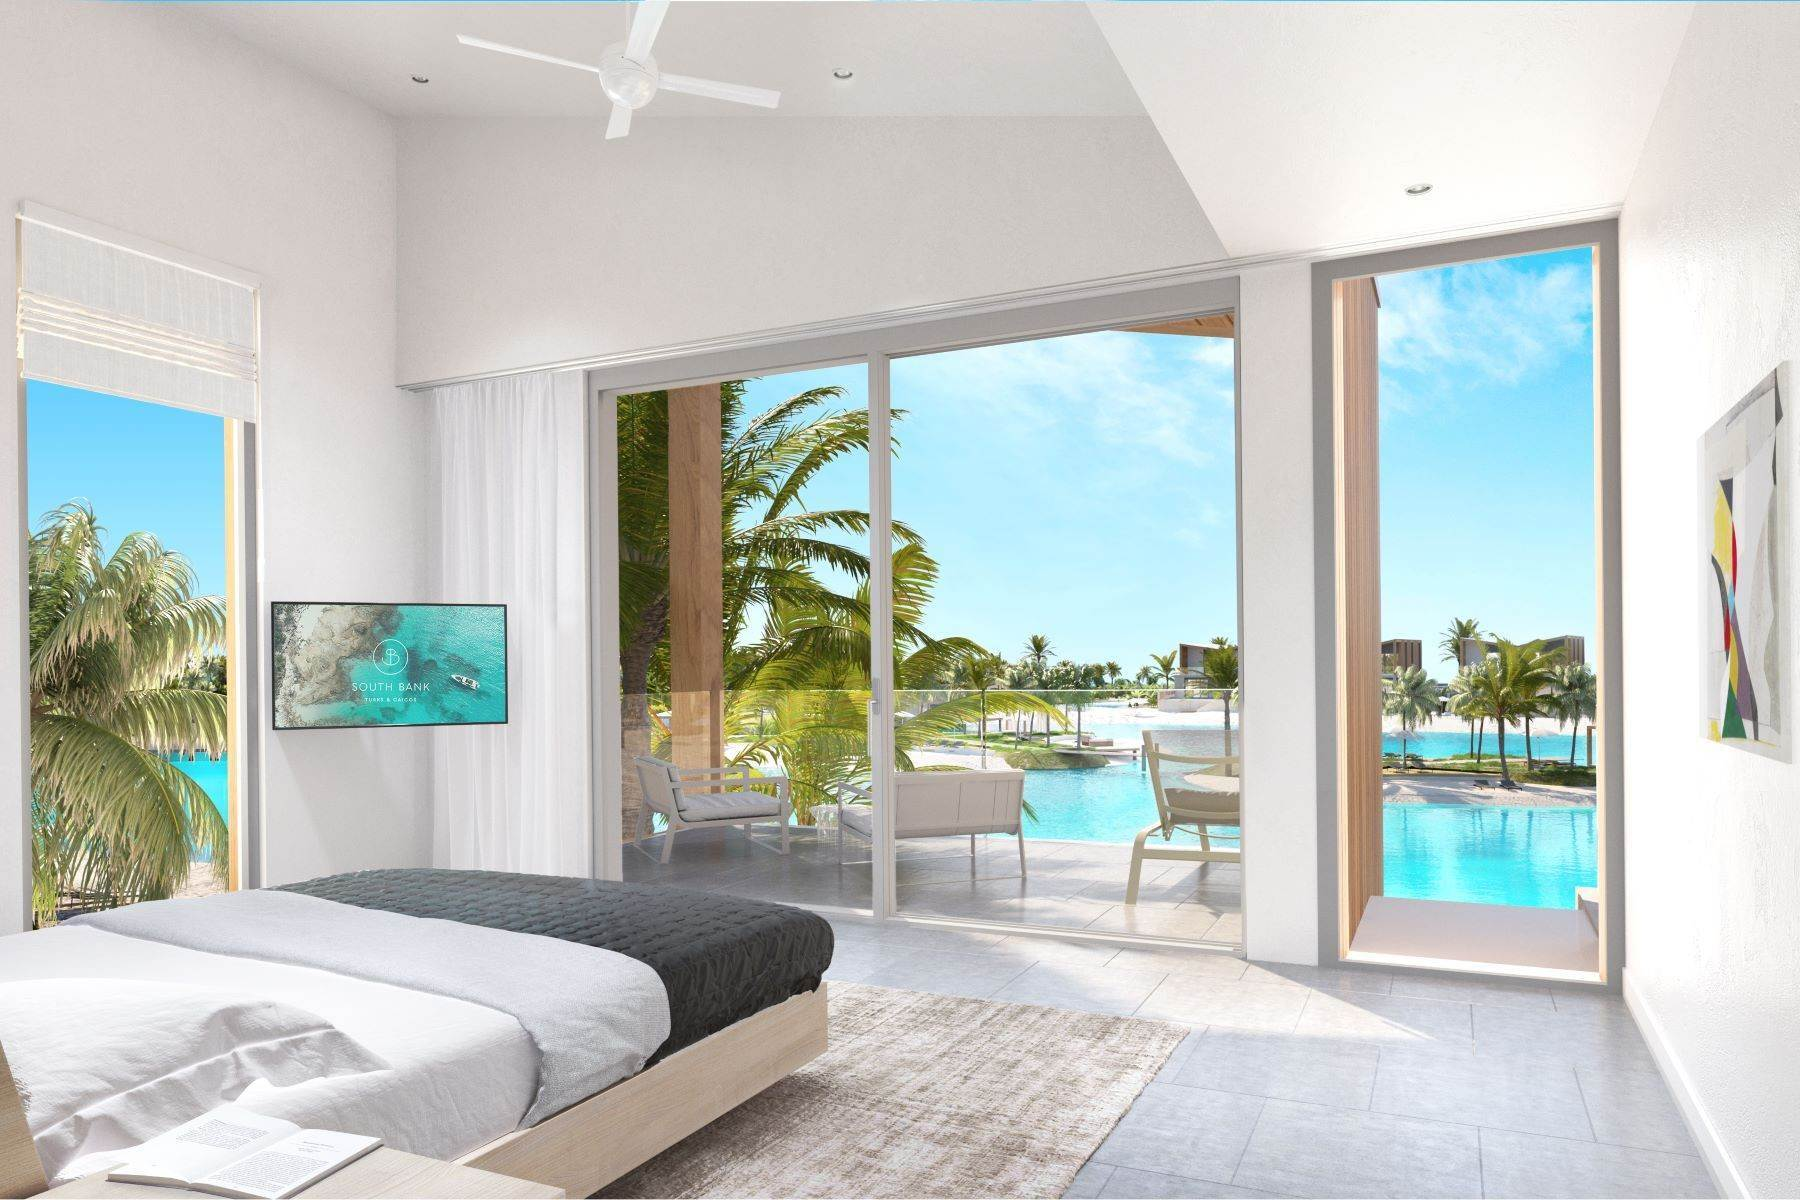 4. Single Family Homes for Sale at SOUTH BANK - THE LAGOON II - LAGOON VILLA 18 South Bank, Long Bay, Providenciales Turks And Caicos Islands